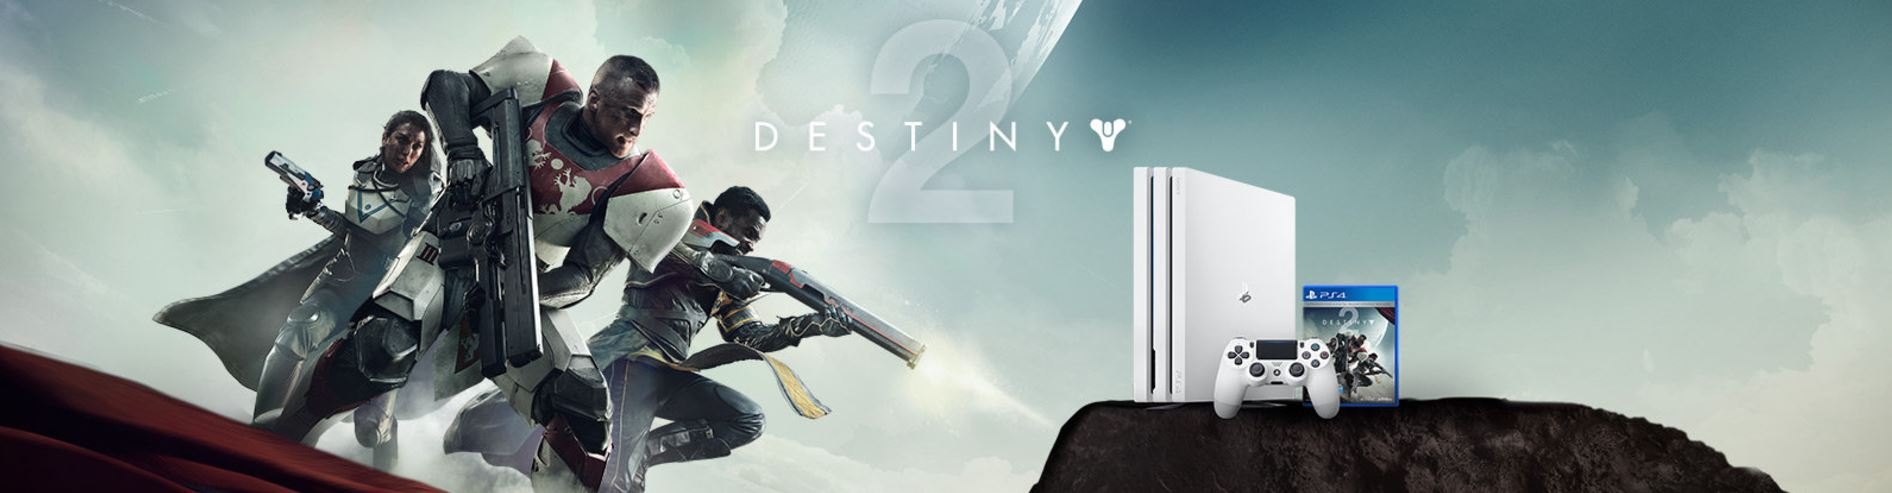 https://www.playstation.com/en-us/explore/ps4-pro/systems/limited-edition-destiny-2-ps4-pro-bundle/?smcid=pssocial:blog:hardware:introducing_the_limited_edition_destiny_2_ps4_pro_bundle:7_10_17